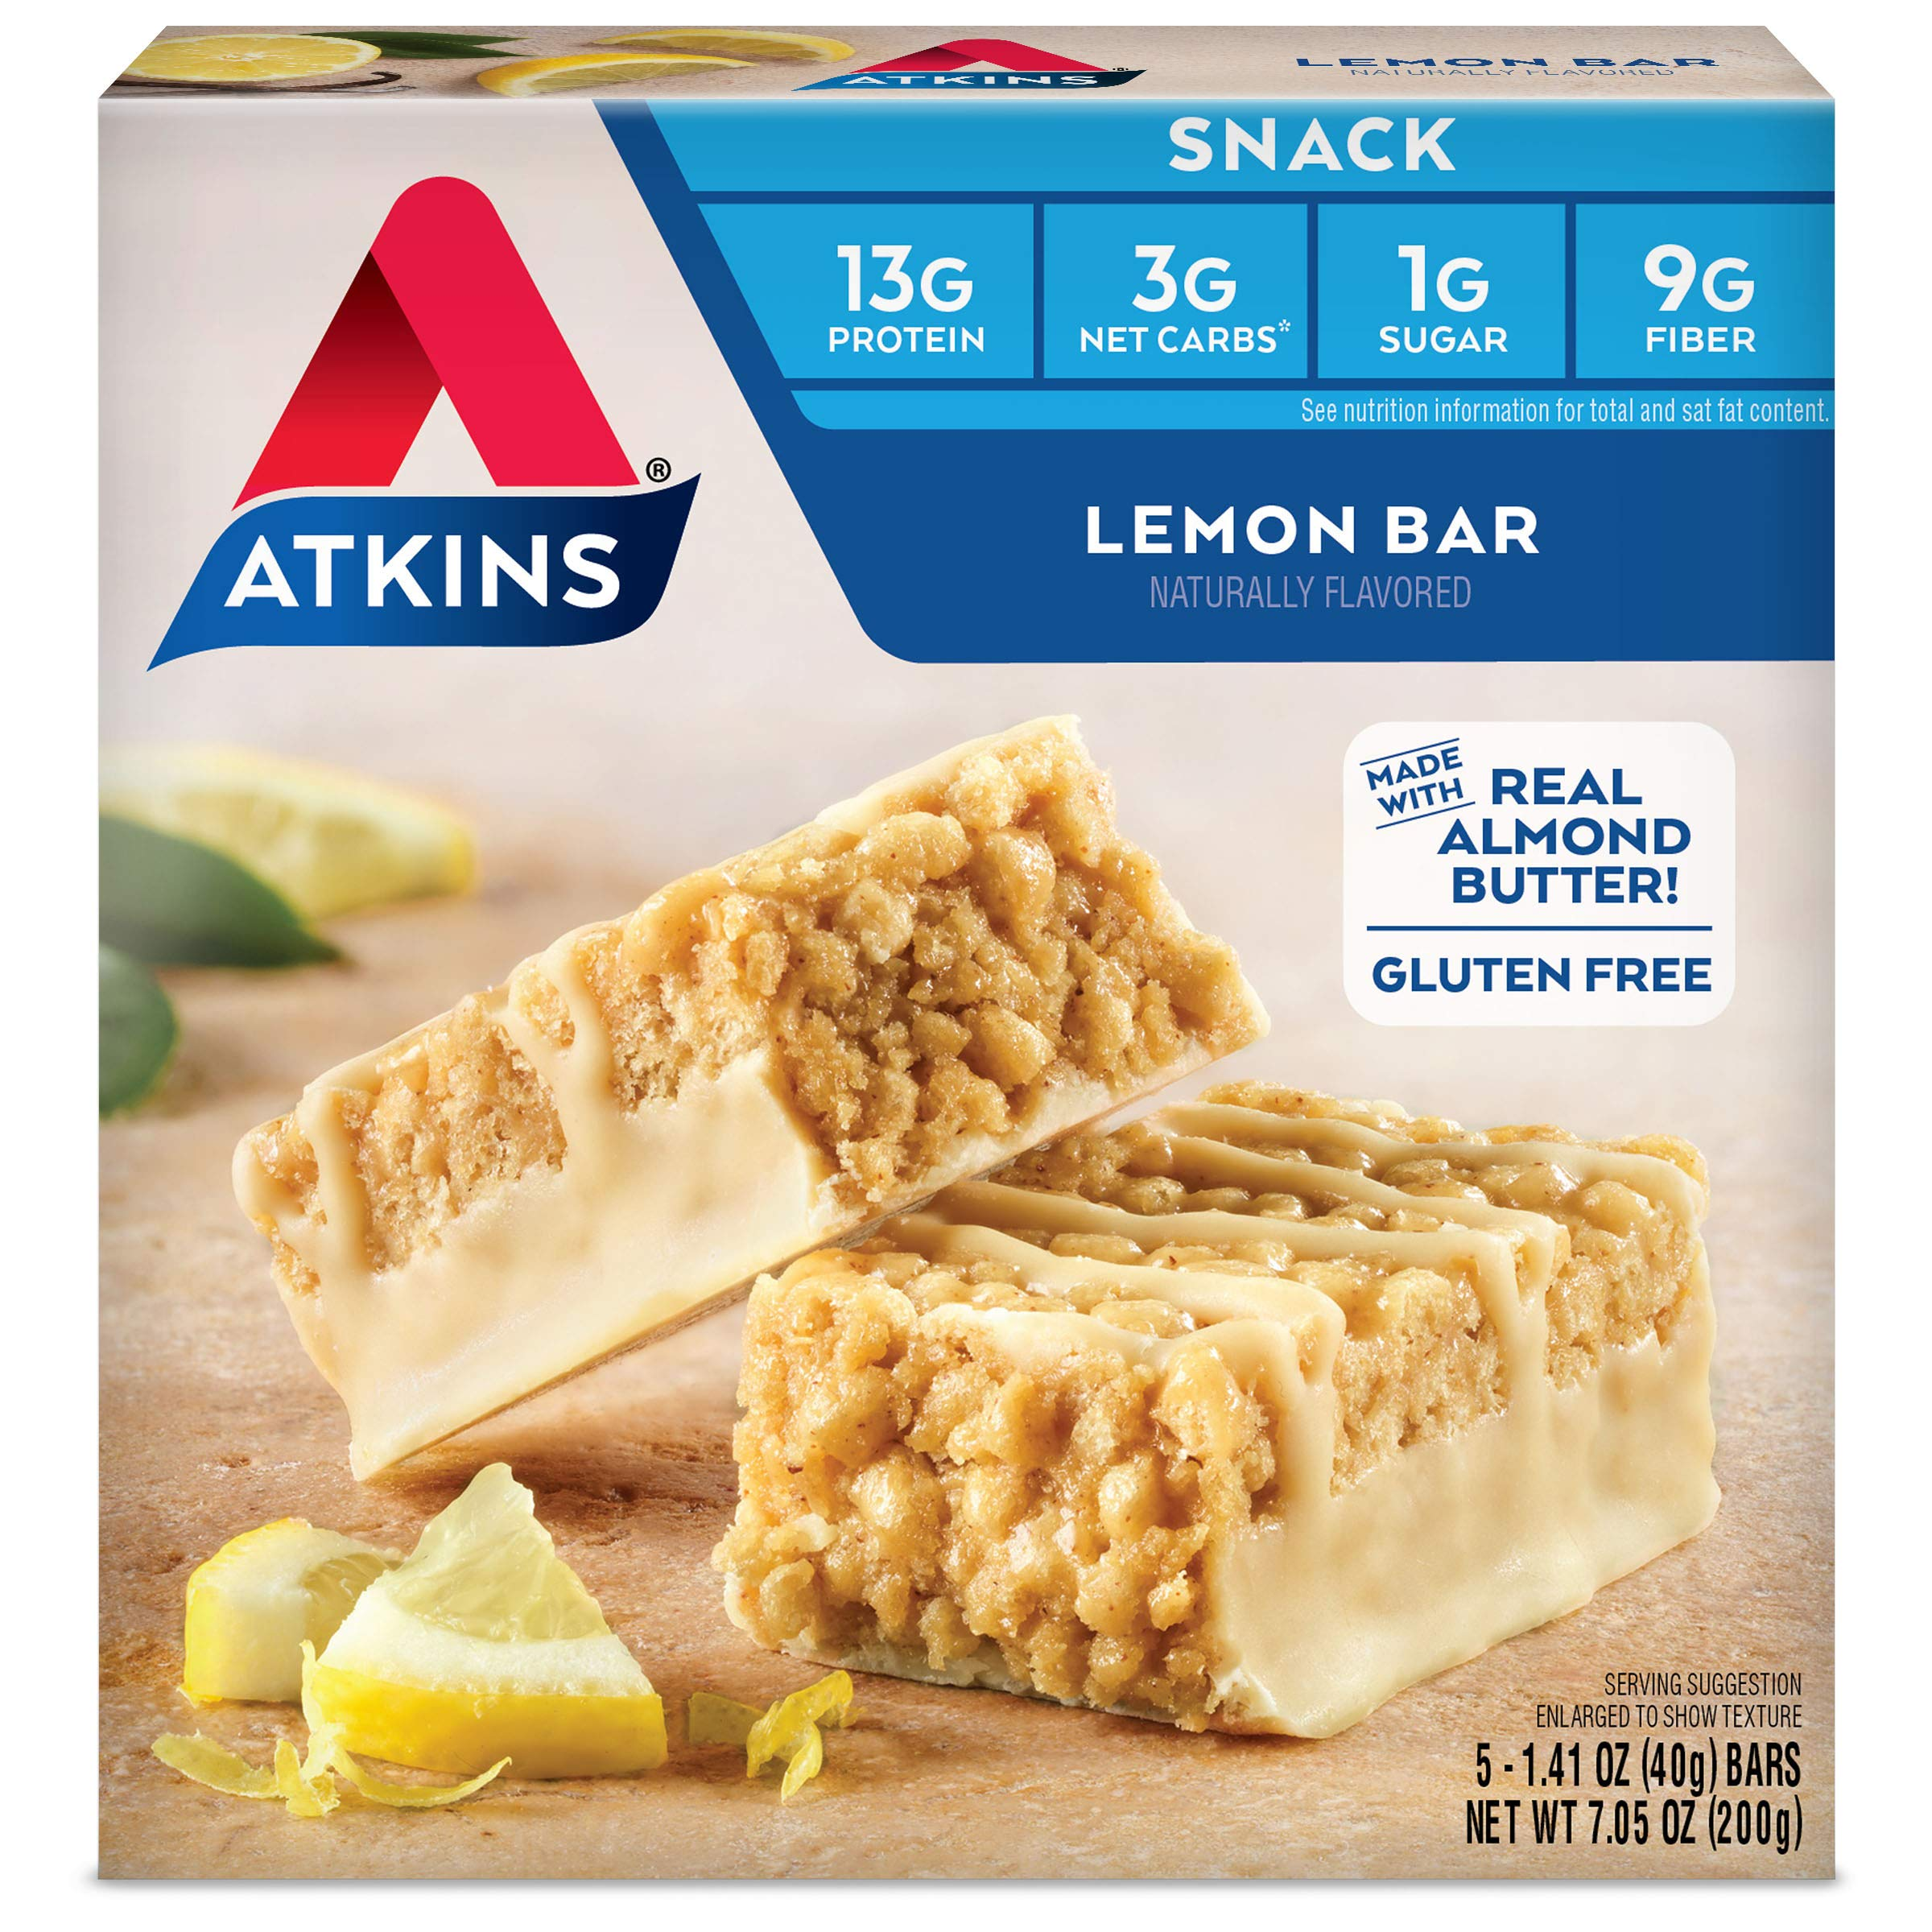 Atkins Gluten Free Snack Bar, Lemon Bar, Keto Friendly, 5 Count (Pack of 6) by Atkins